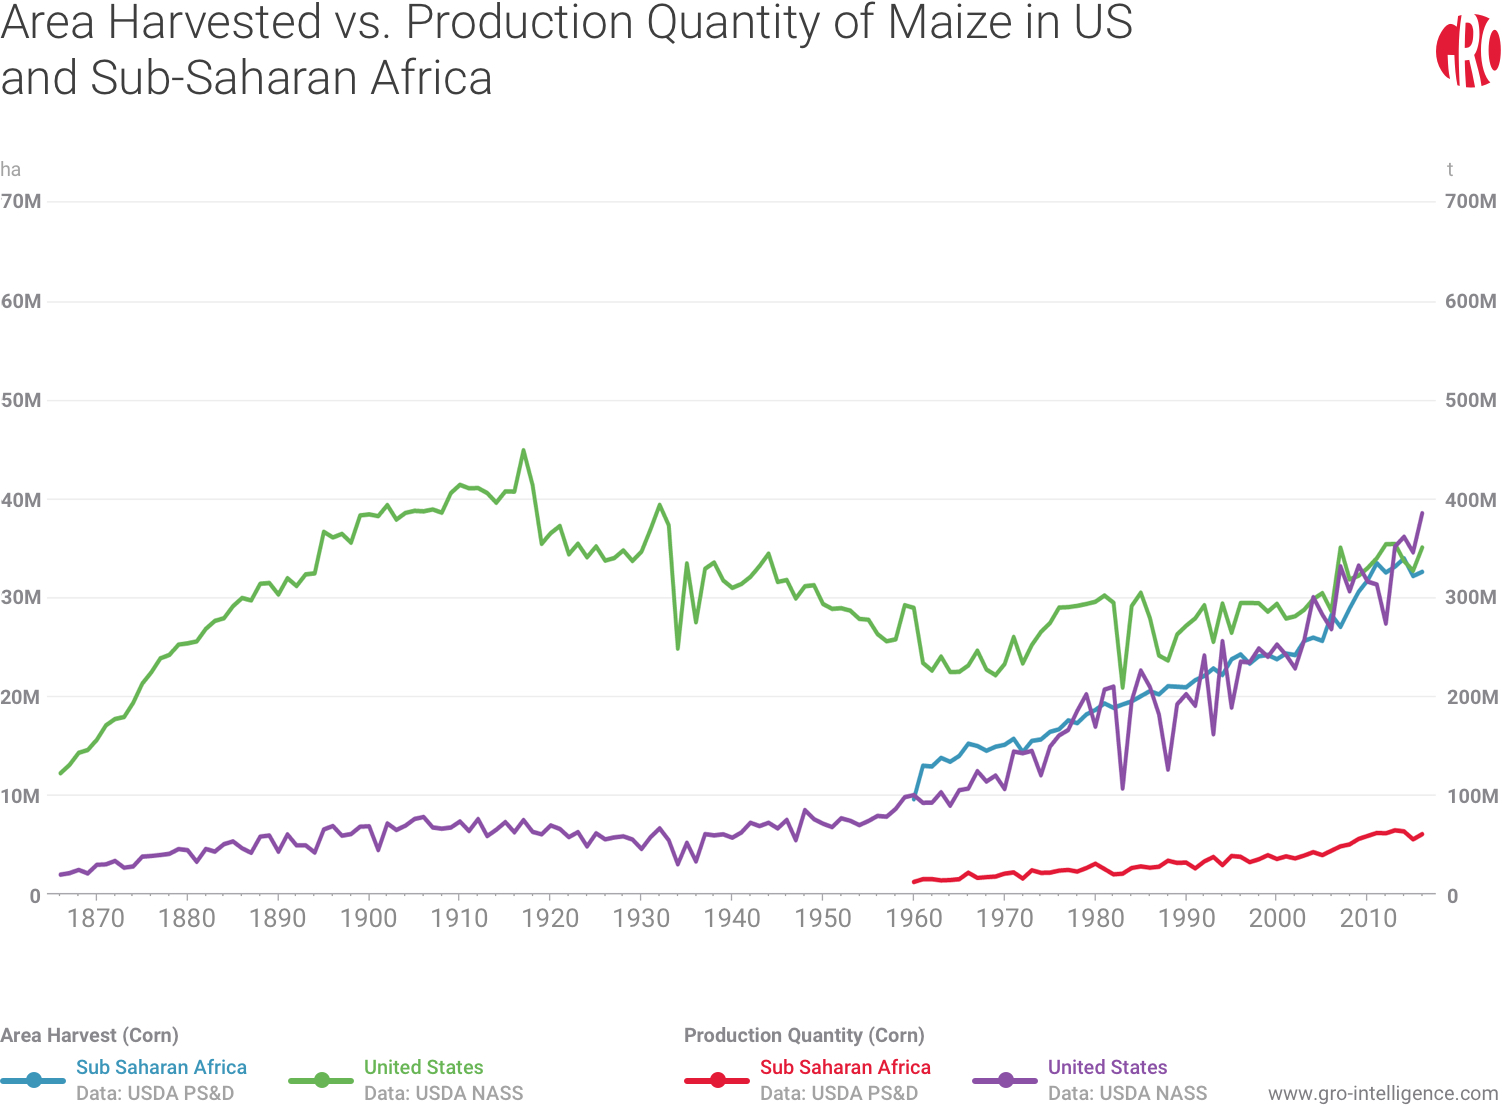 US and African Area Harvested and Maize Production